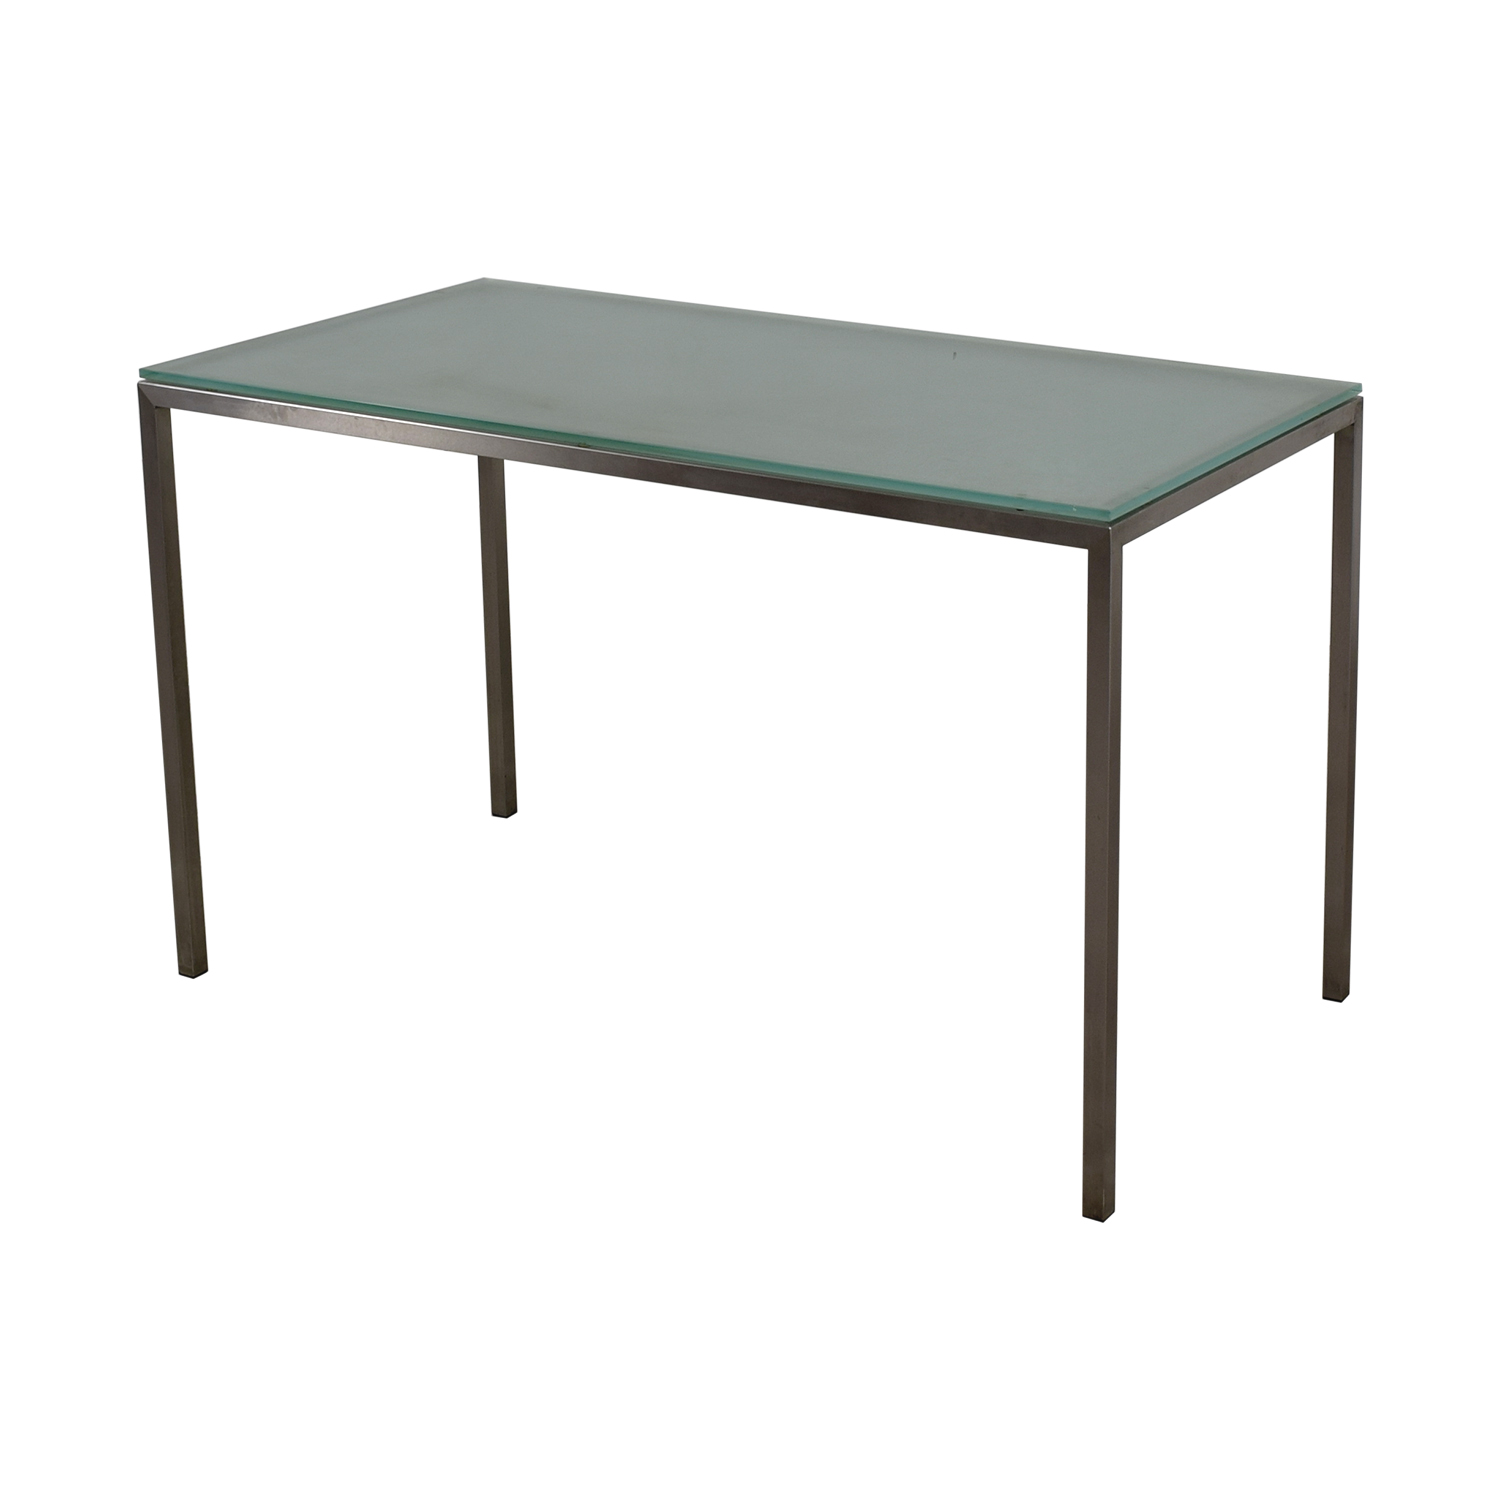 75% OFF - Room & Board Room & Board Glass and Steel Desk / Tables